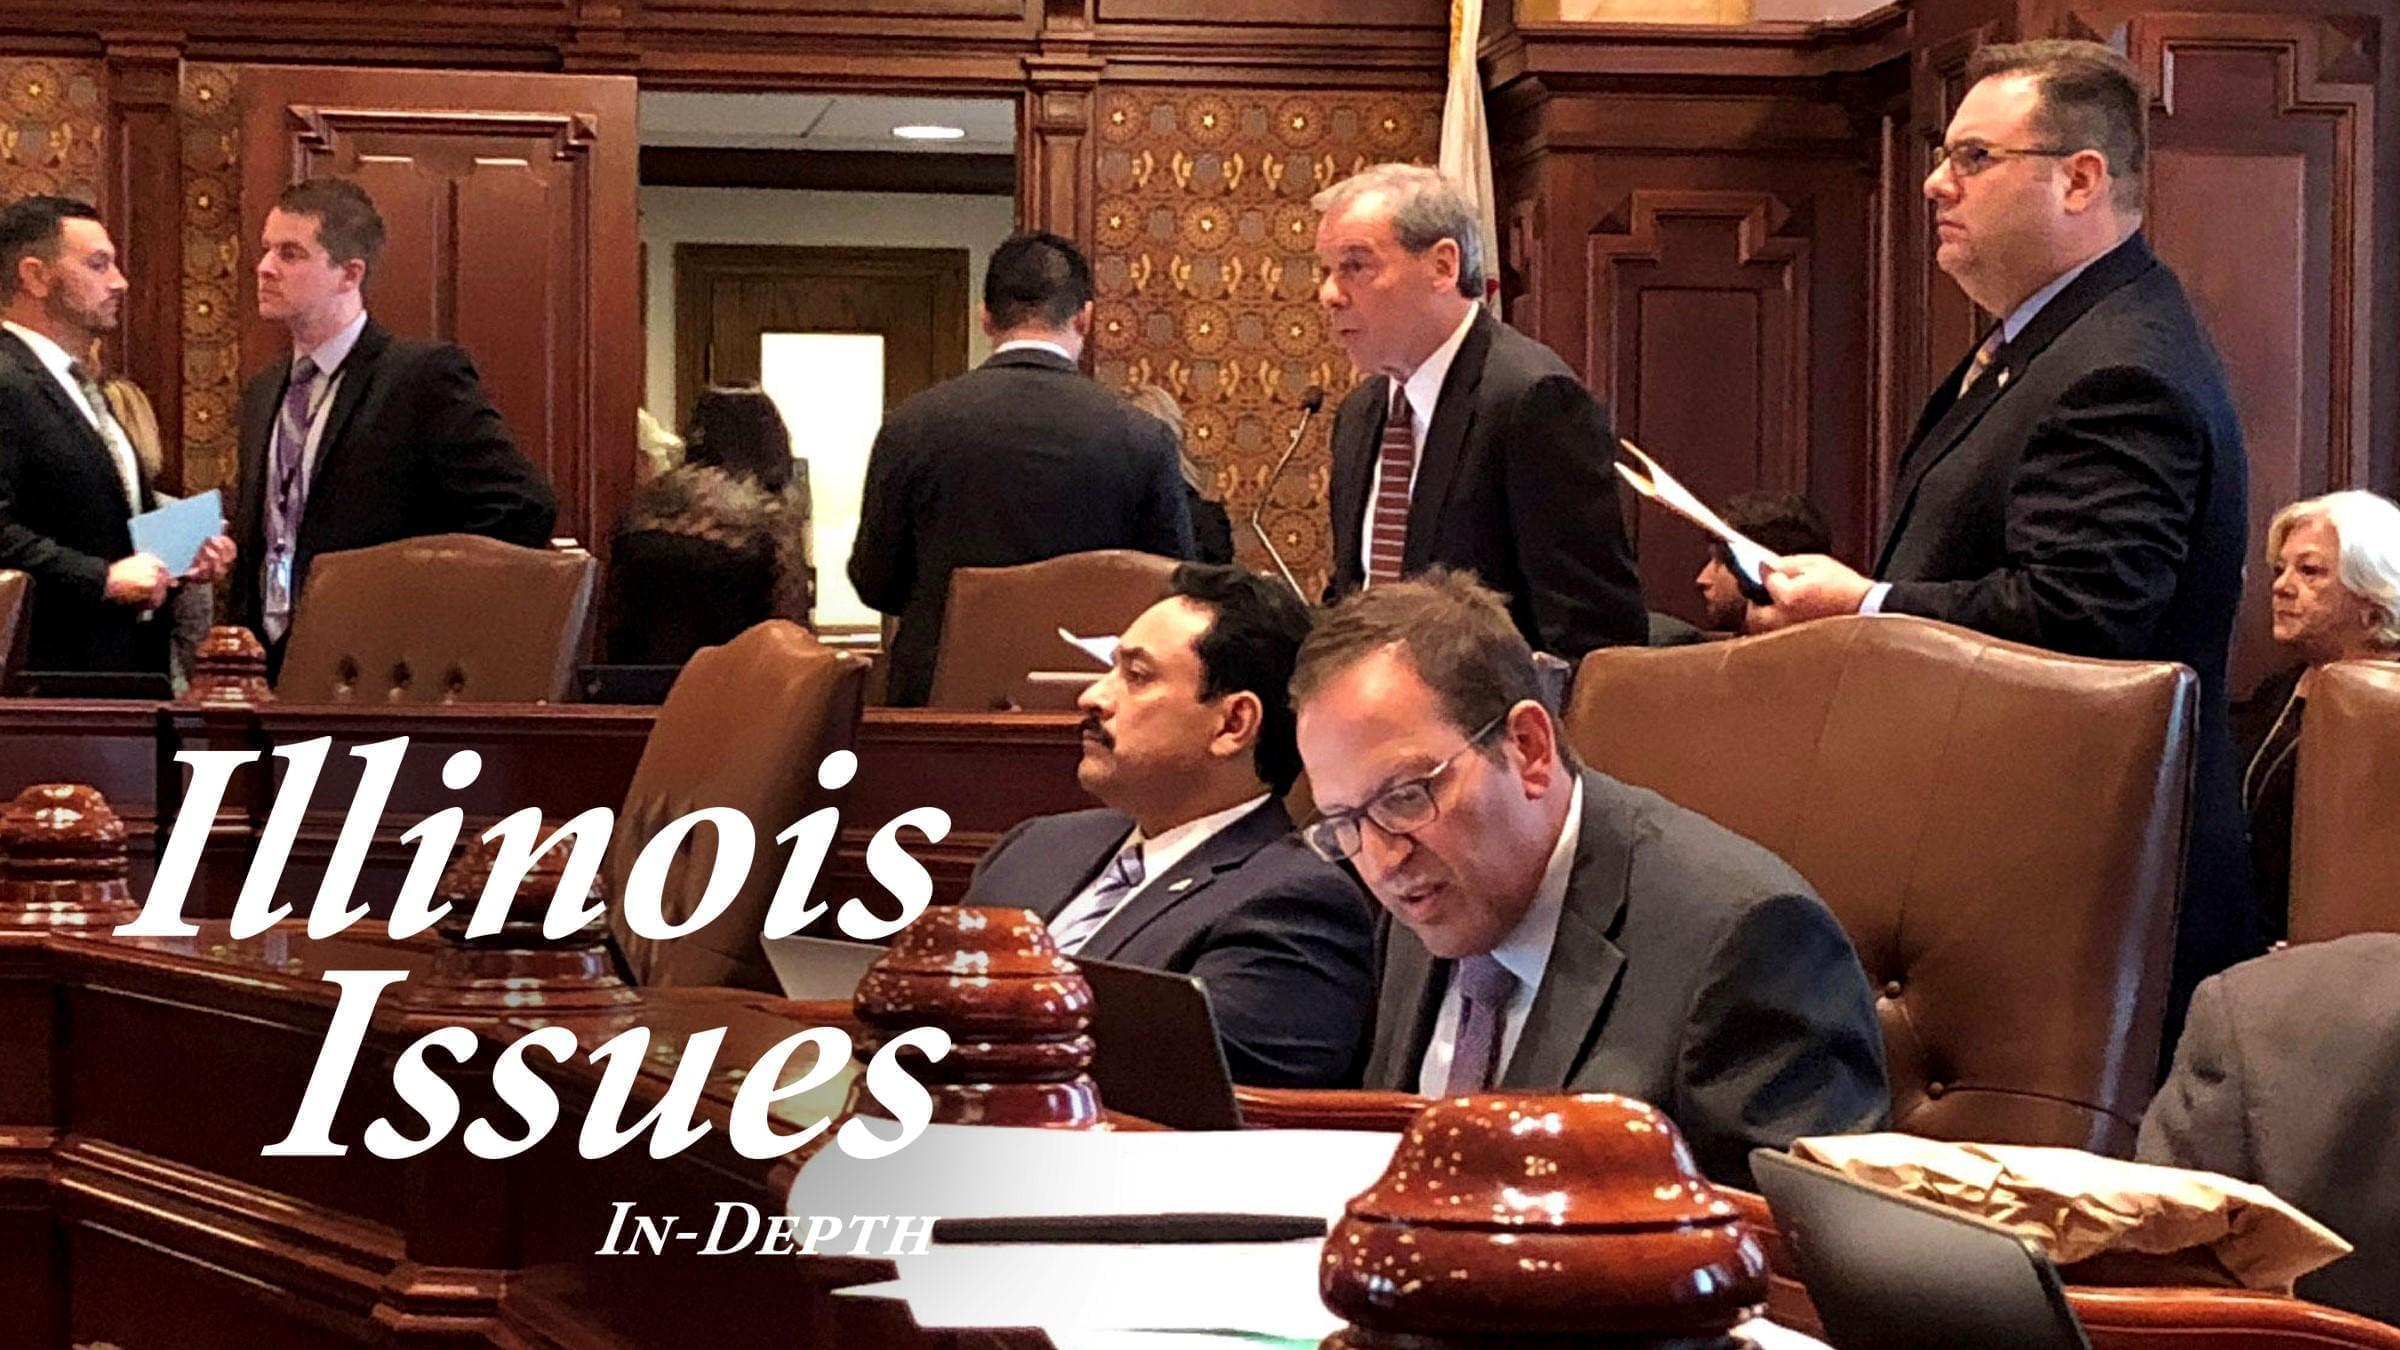 During the veto session debate, Senate President John Cullerton (back) advocates for HB 137 — a proposal to extend the statute of limitation on complaints made to the Inspector General in light of a backlog of complaints.